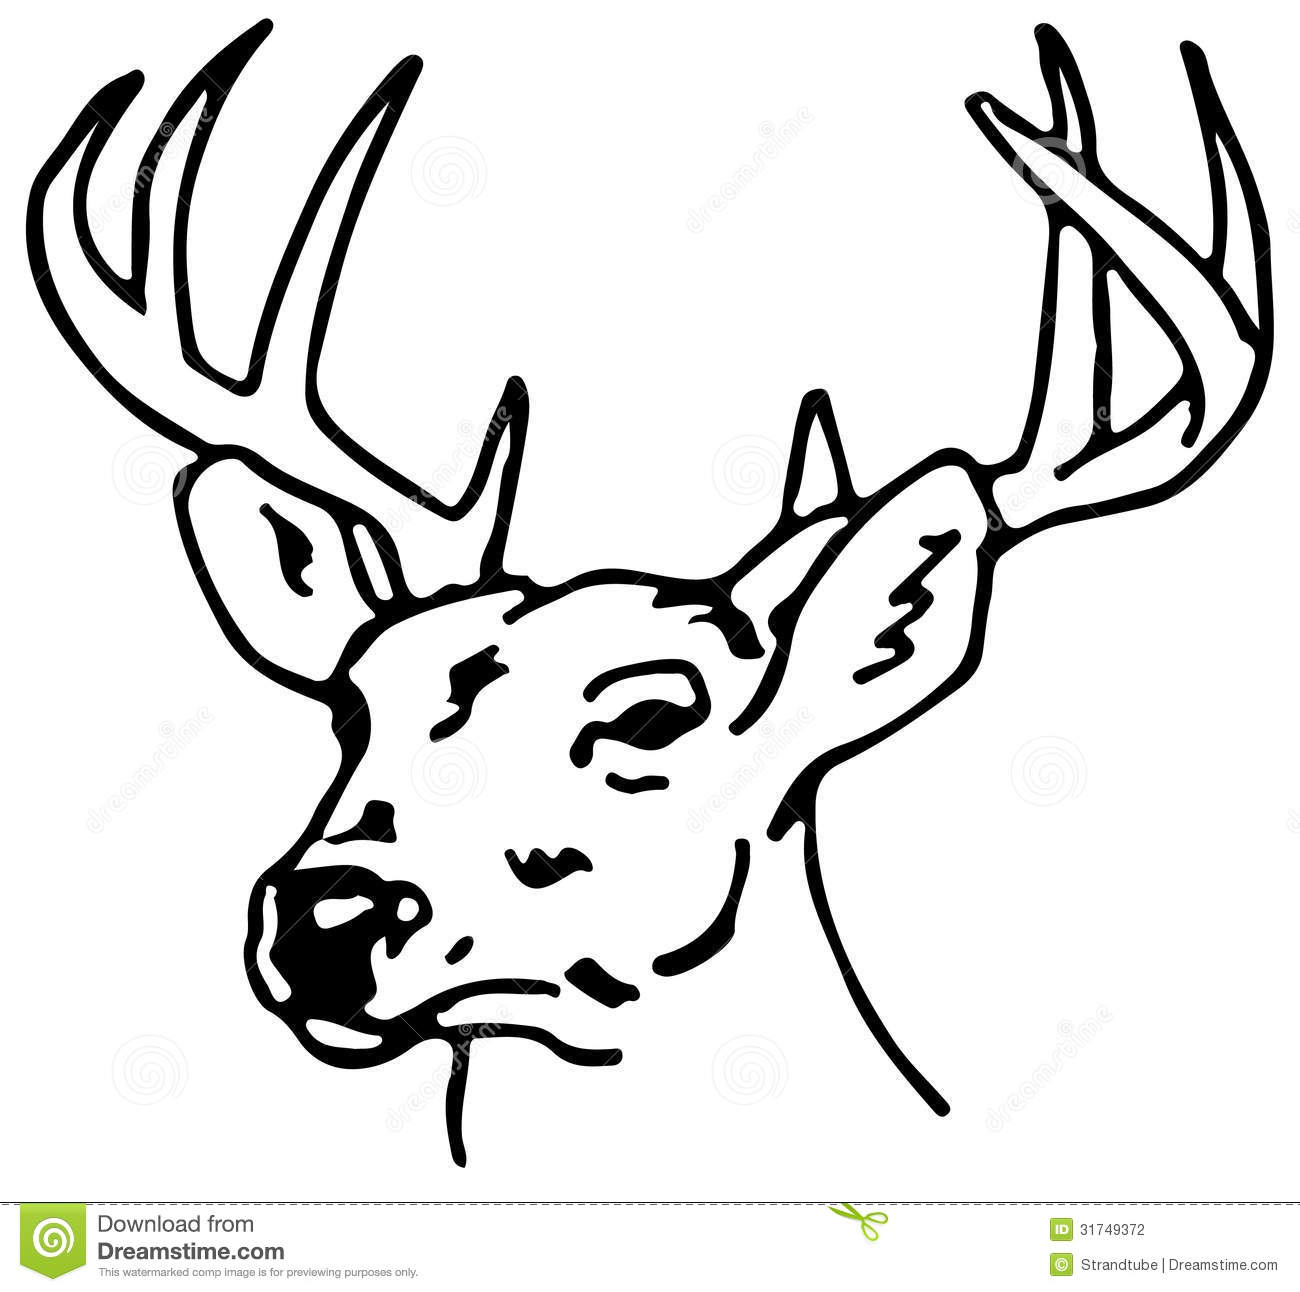 Stock Photography: Drawing Of A Reindeer /eps. Image: 31749372